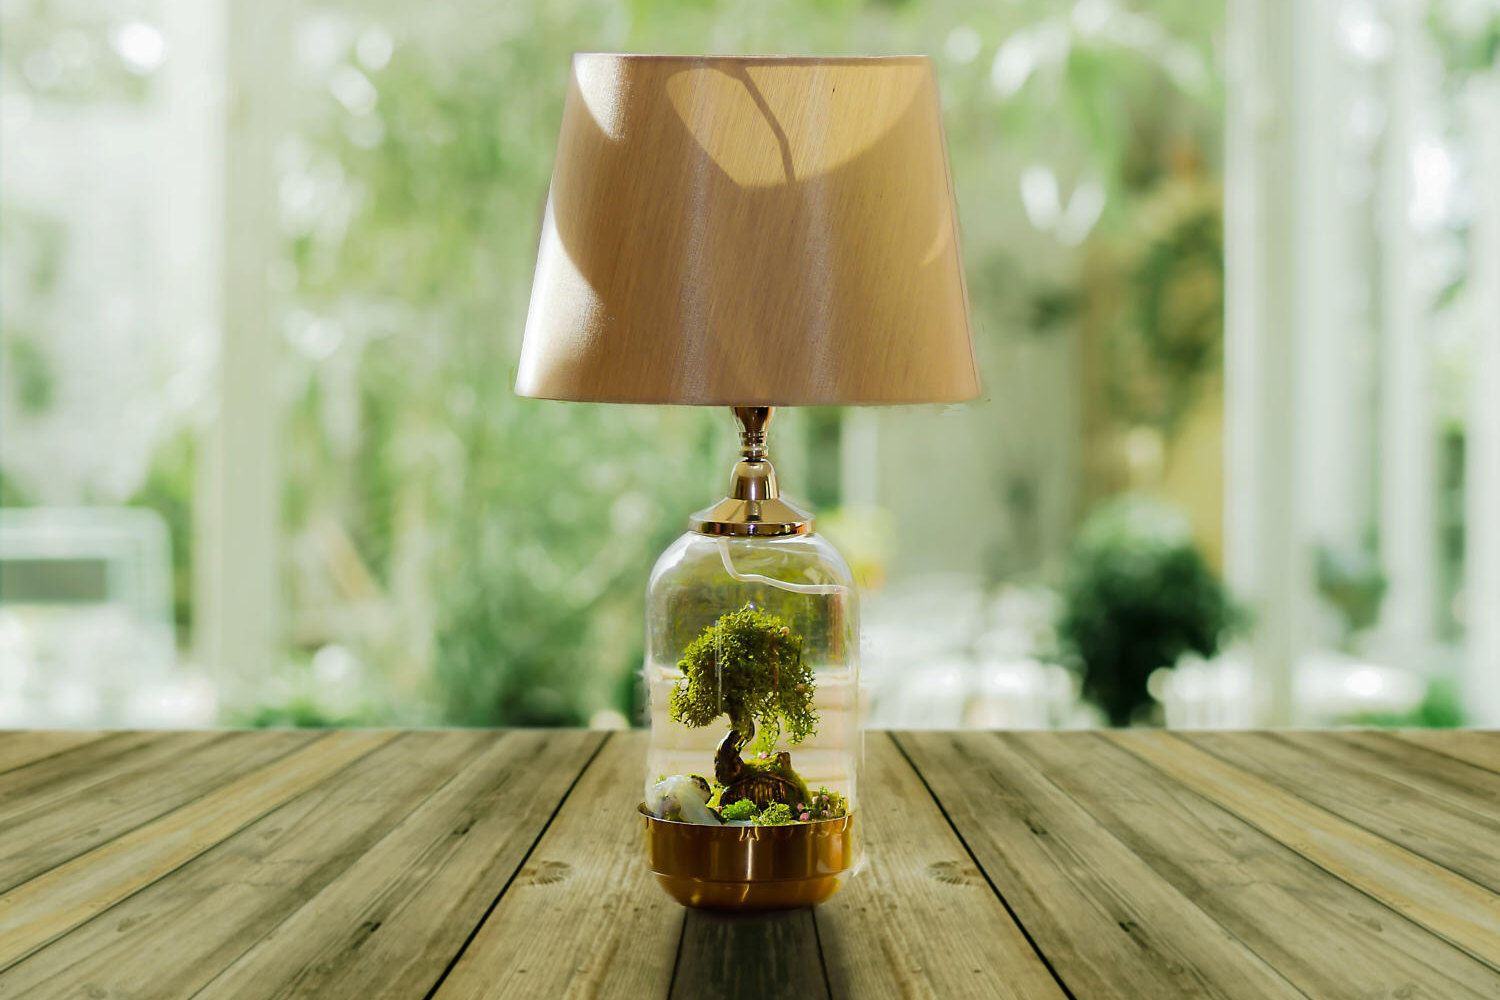 Hobbit Table lamp, Glass Cloche lamp, Lord of The Rings